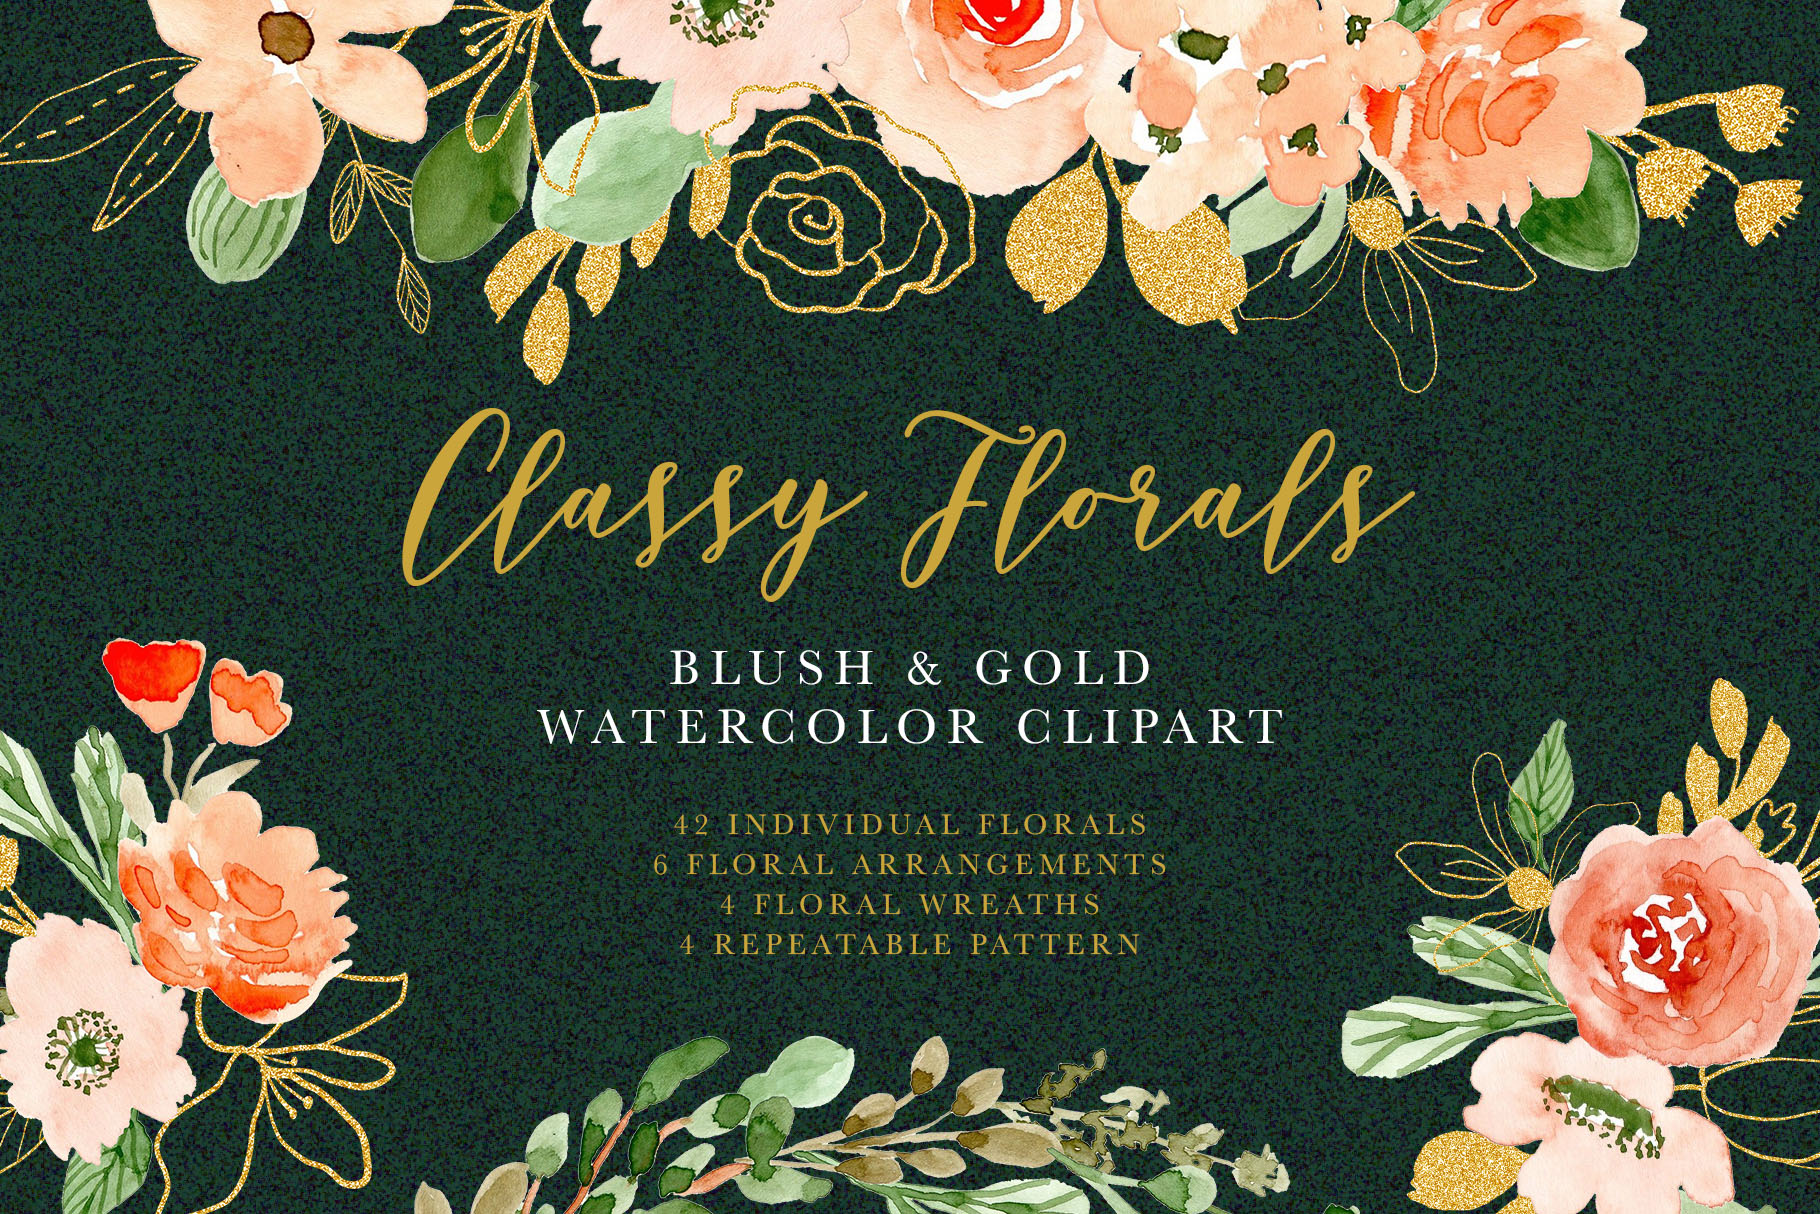 Classy Florals - Watercolor Clipart example image 1